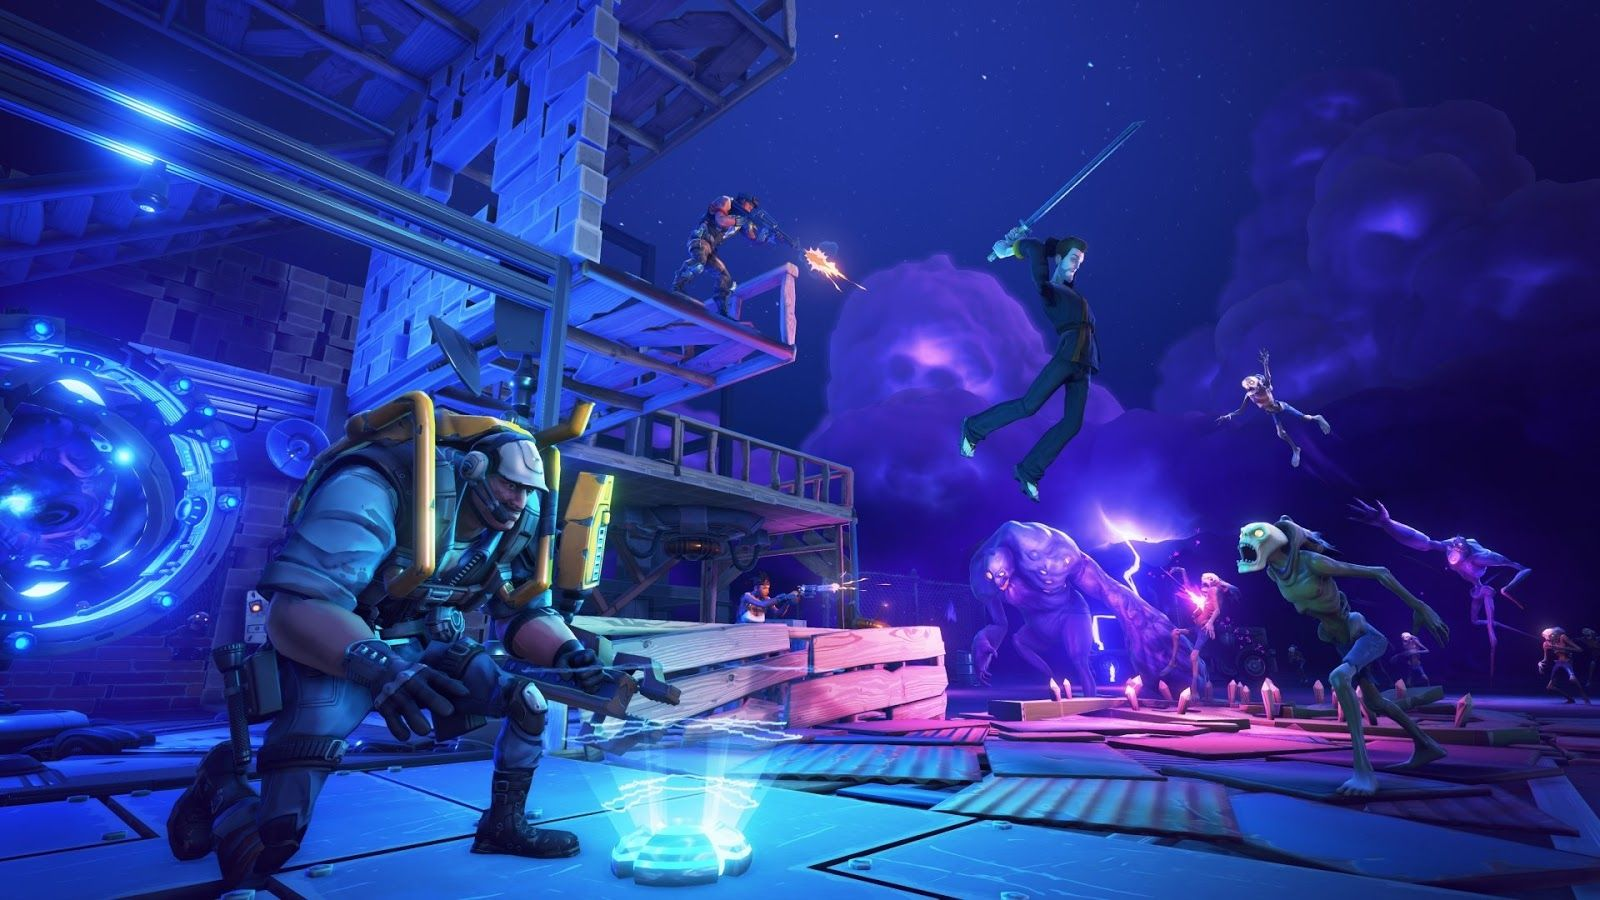 Download Fortnite Hd Wallpapers Read Games Review Play Online Games Download Games Wallpapers Android Wallpaper Space Android Wallpaper 3840x2160 Wallpaper